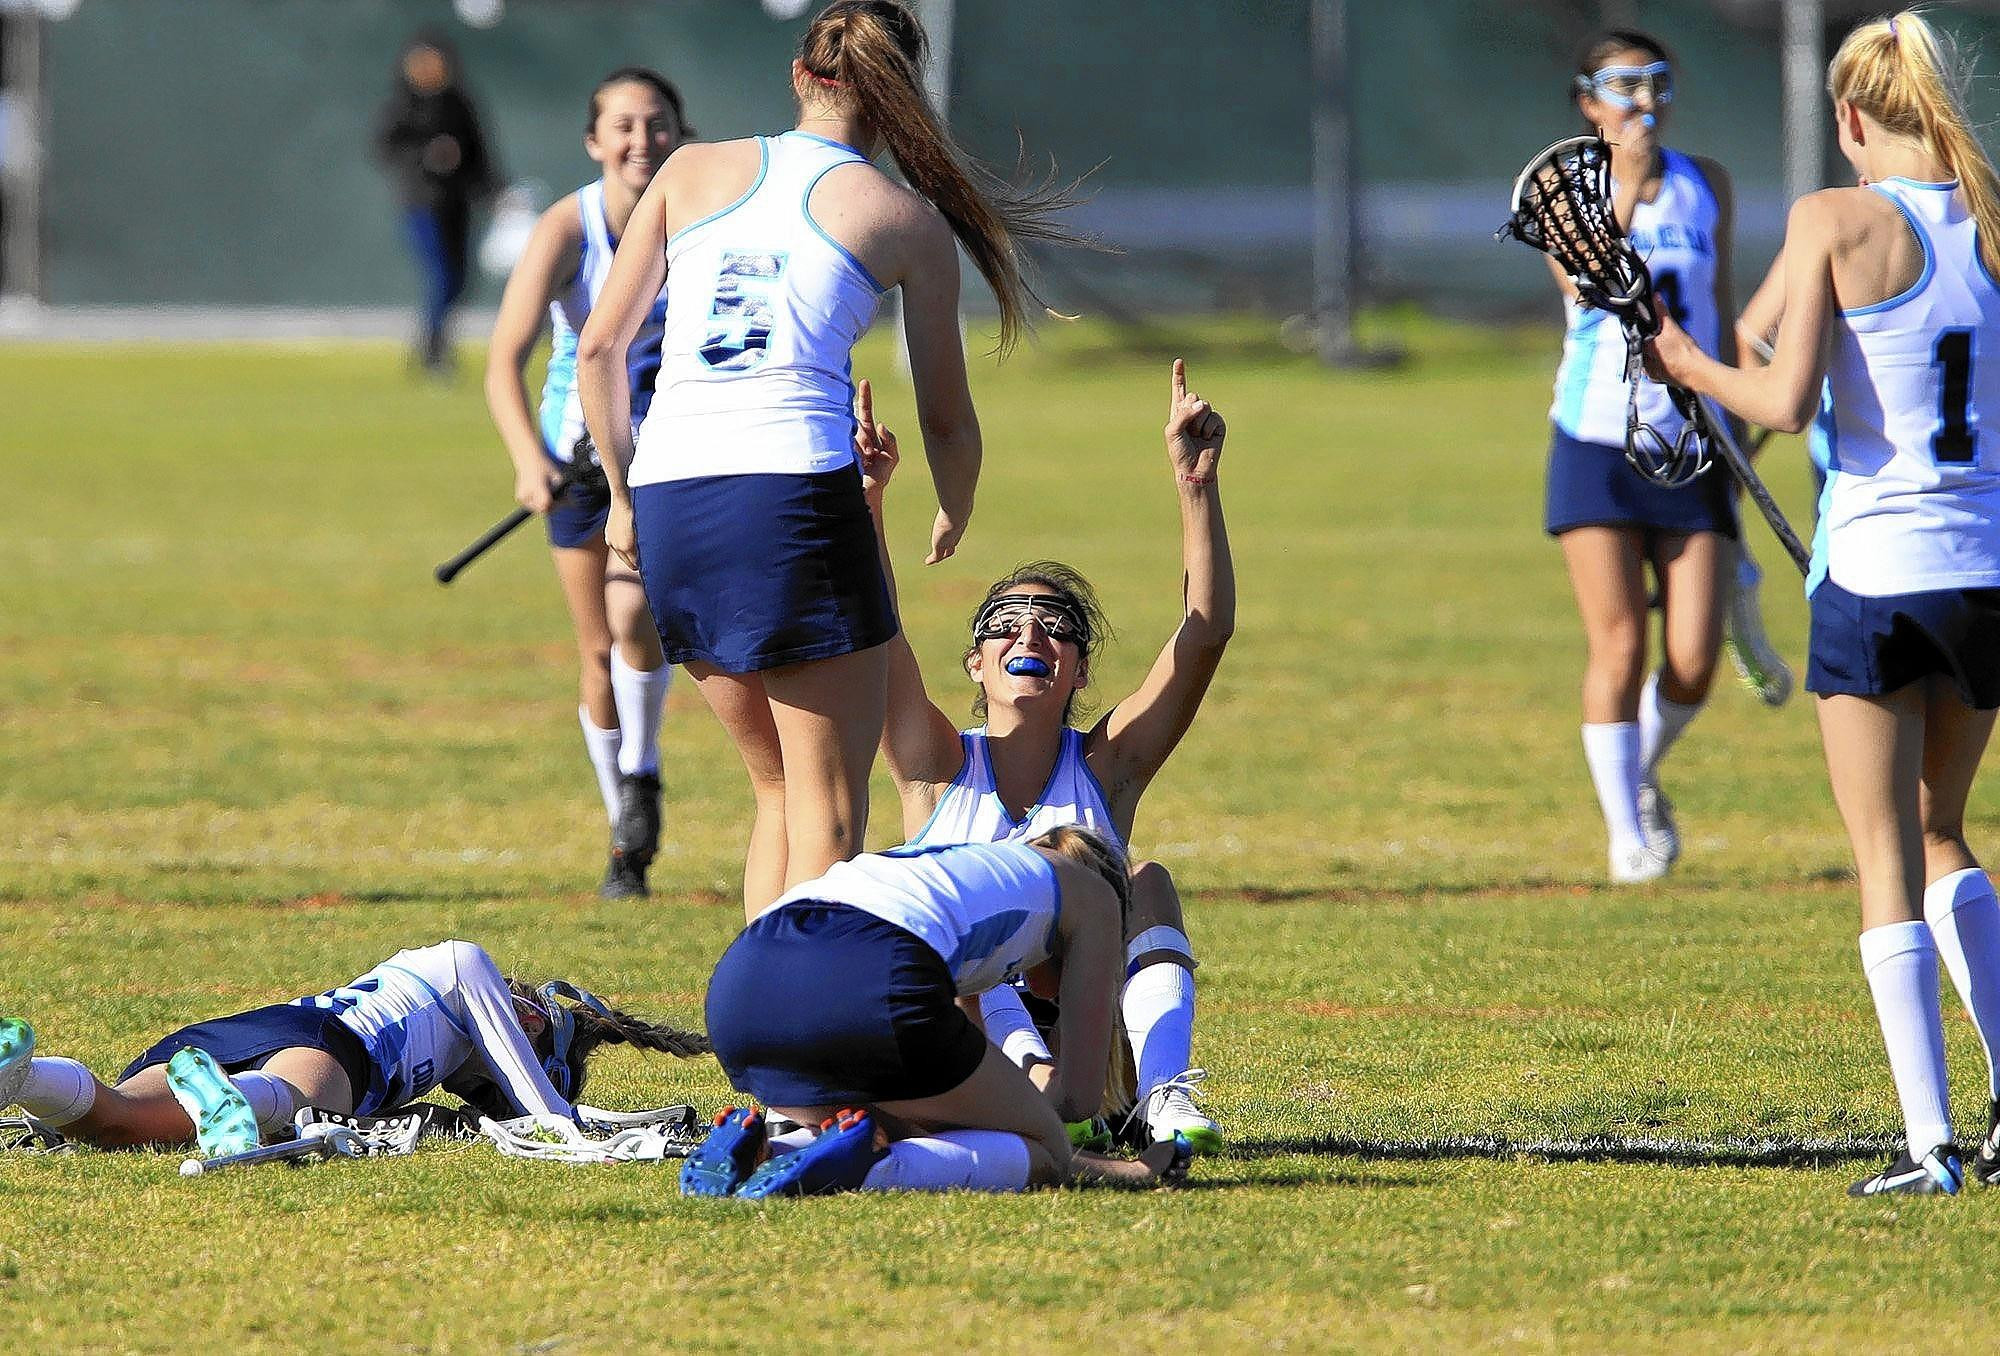 Corona del Mar High's Sabrina Smith, sitting center, cheers as she's helped up by teammate Kendall Mulvaney (5) after the Sea Kings beat Beckman, 15-11, in a Pacific Coast League game on Wednesday. Smith tripped as she ran to celebrate with teammates.